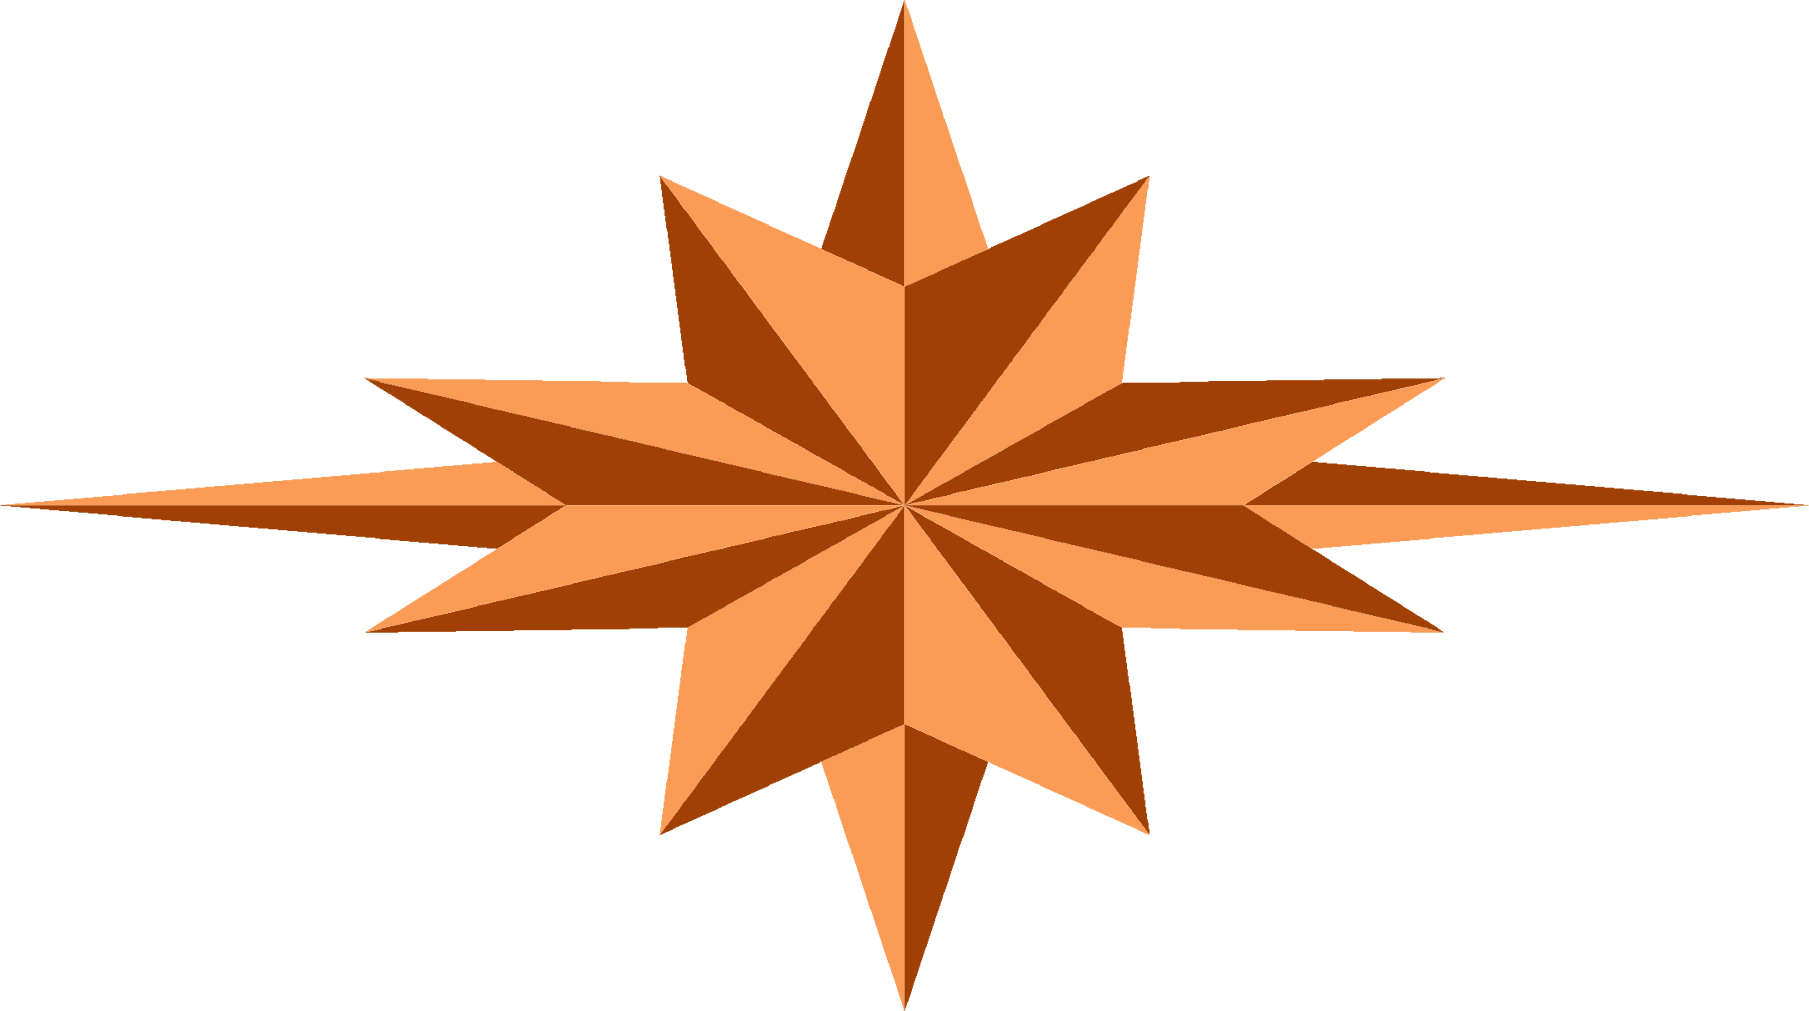 A star logo by lakeside